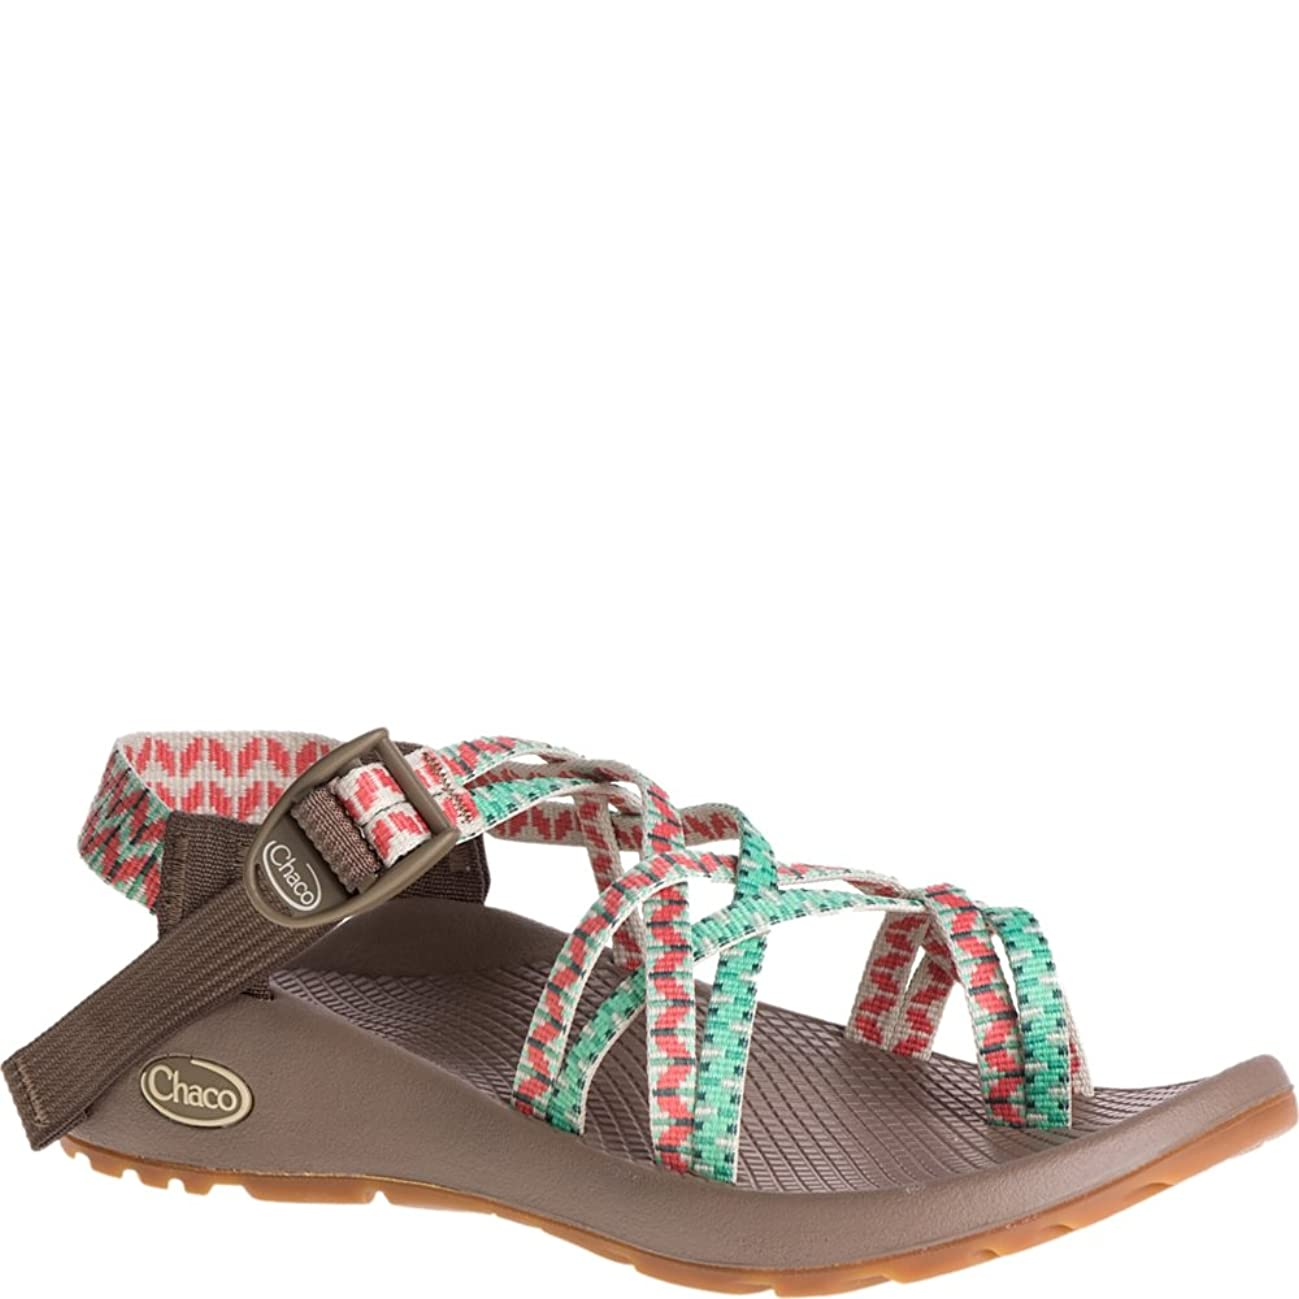 Chaco Women's ZX2 Classic Athletic Sandal